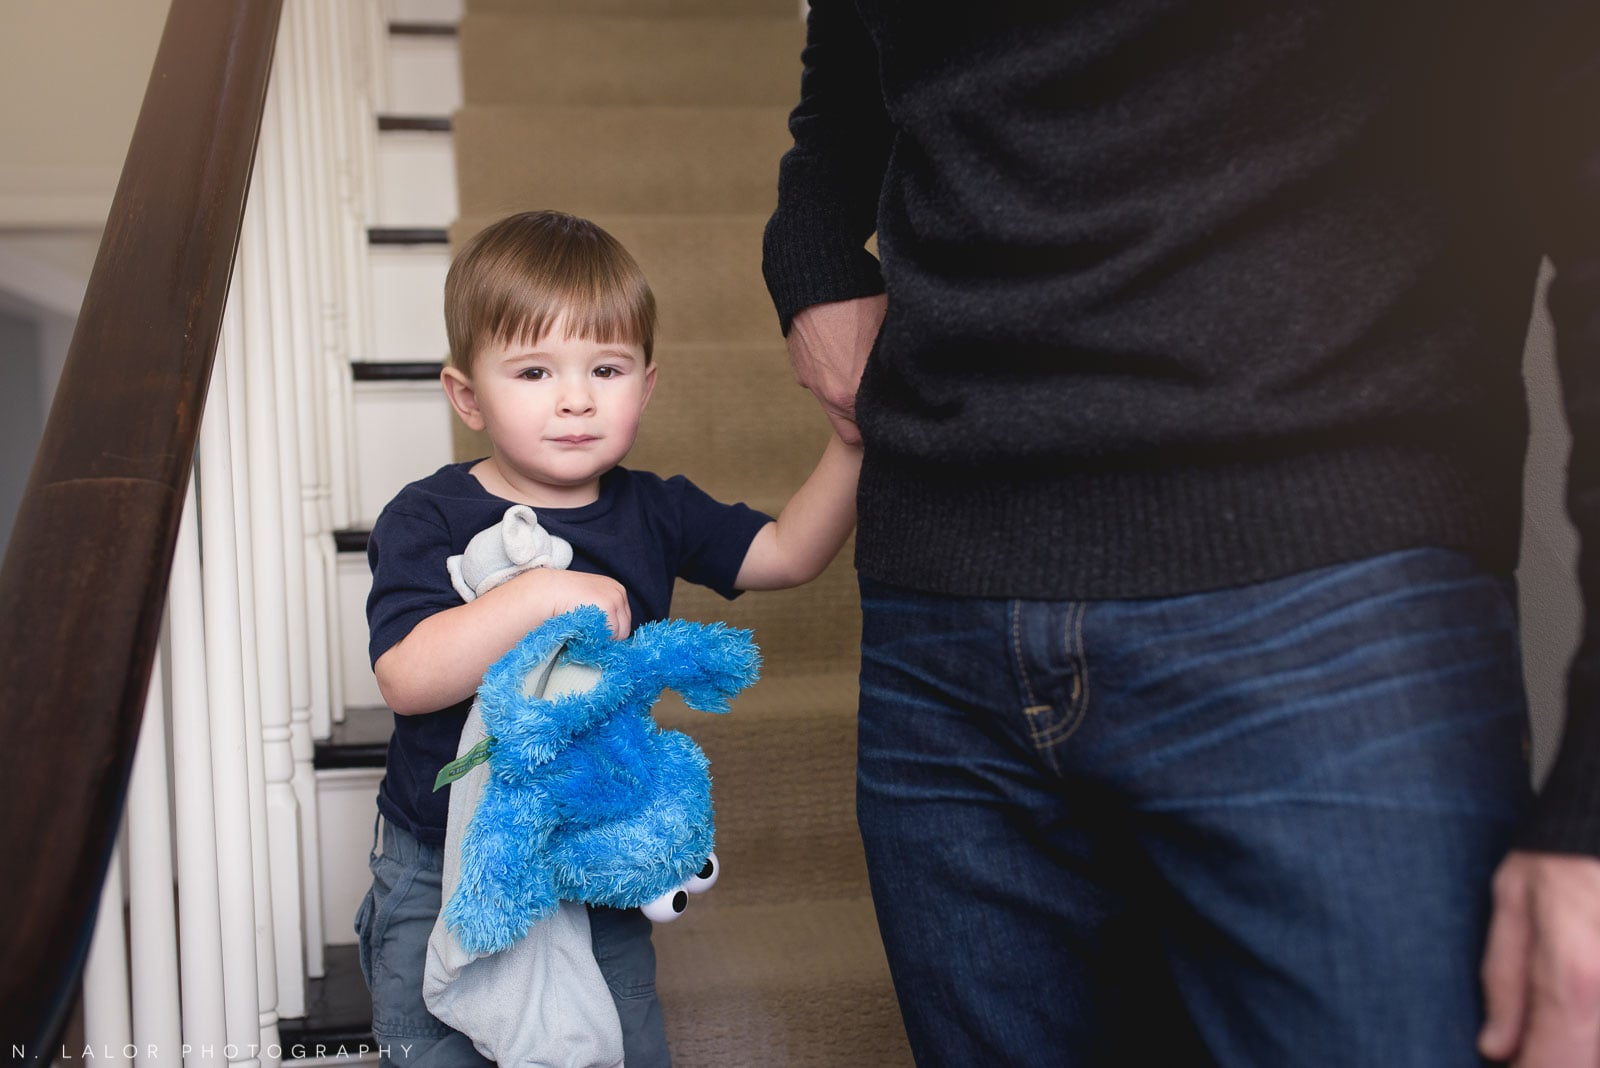 Toddler son holding his father's hand on the stairs. At-home lifestyle portrait by N. Lalor Photography.